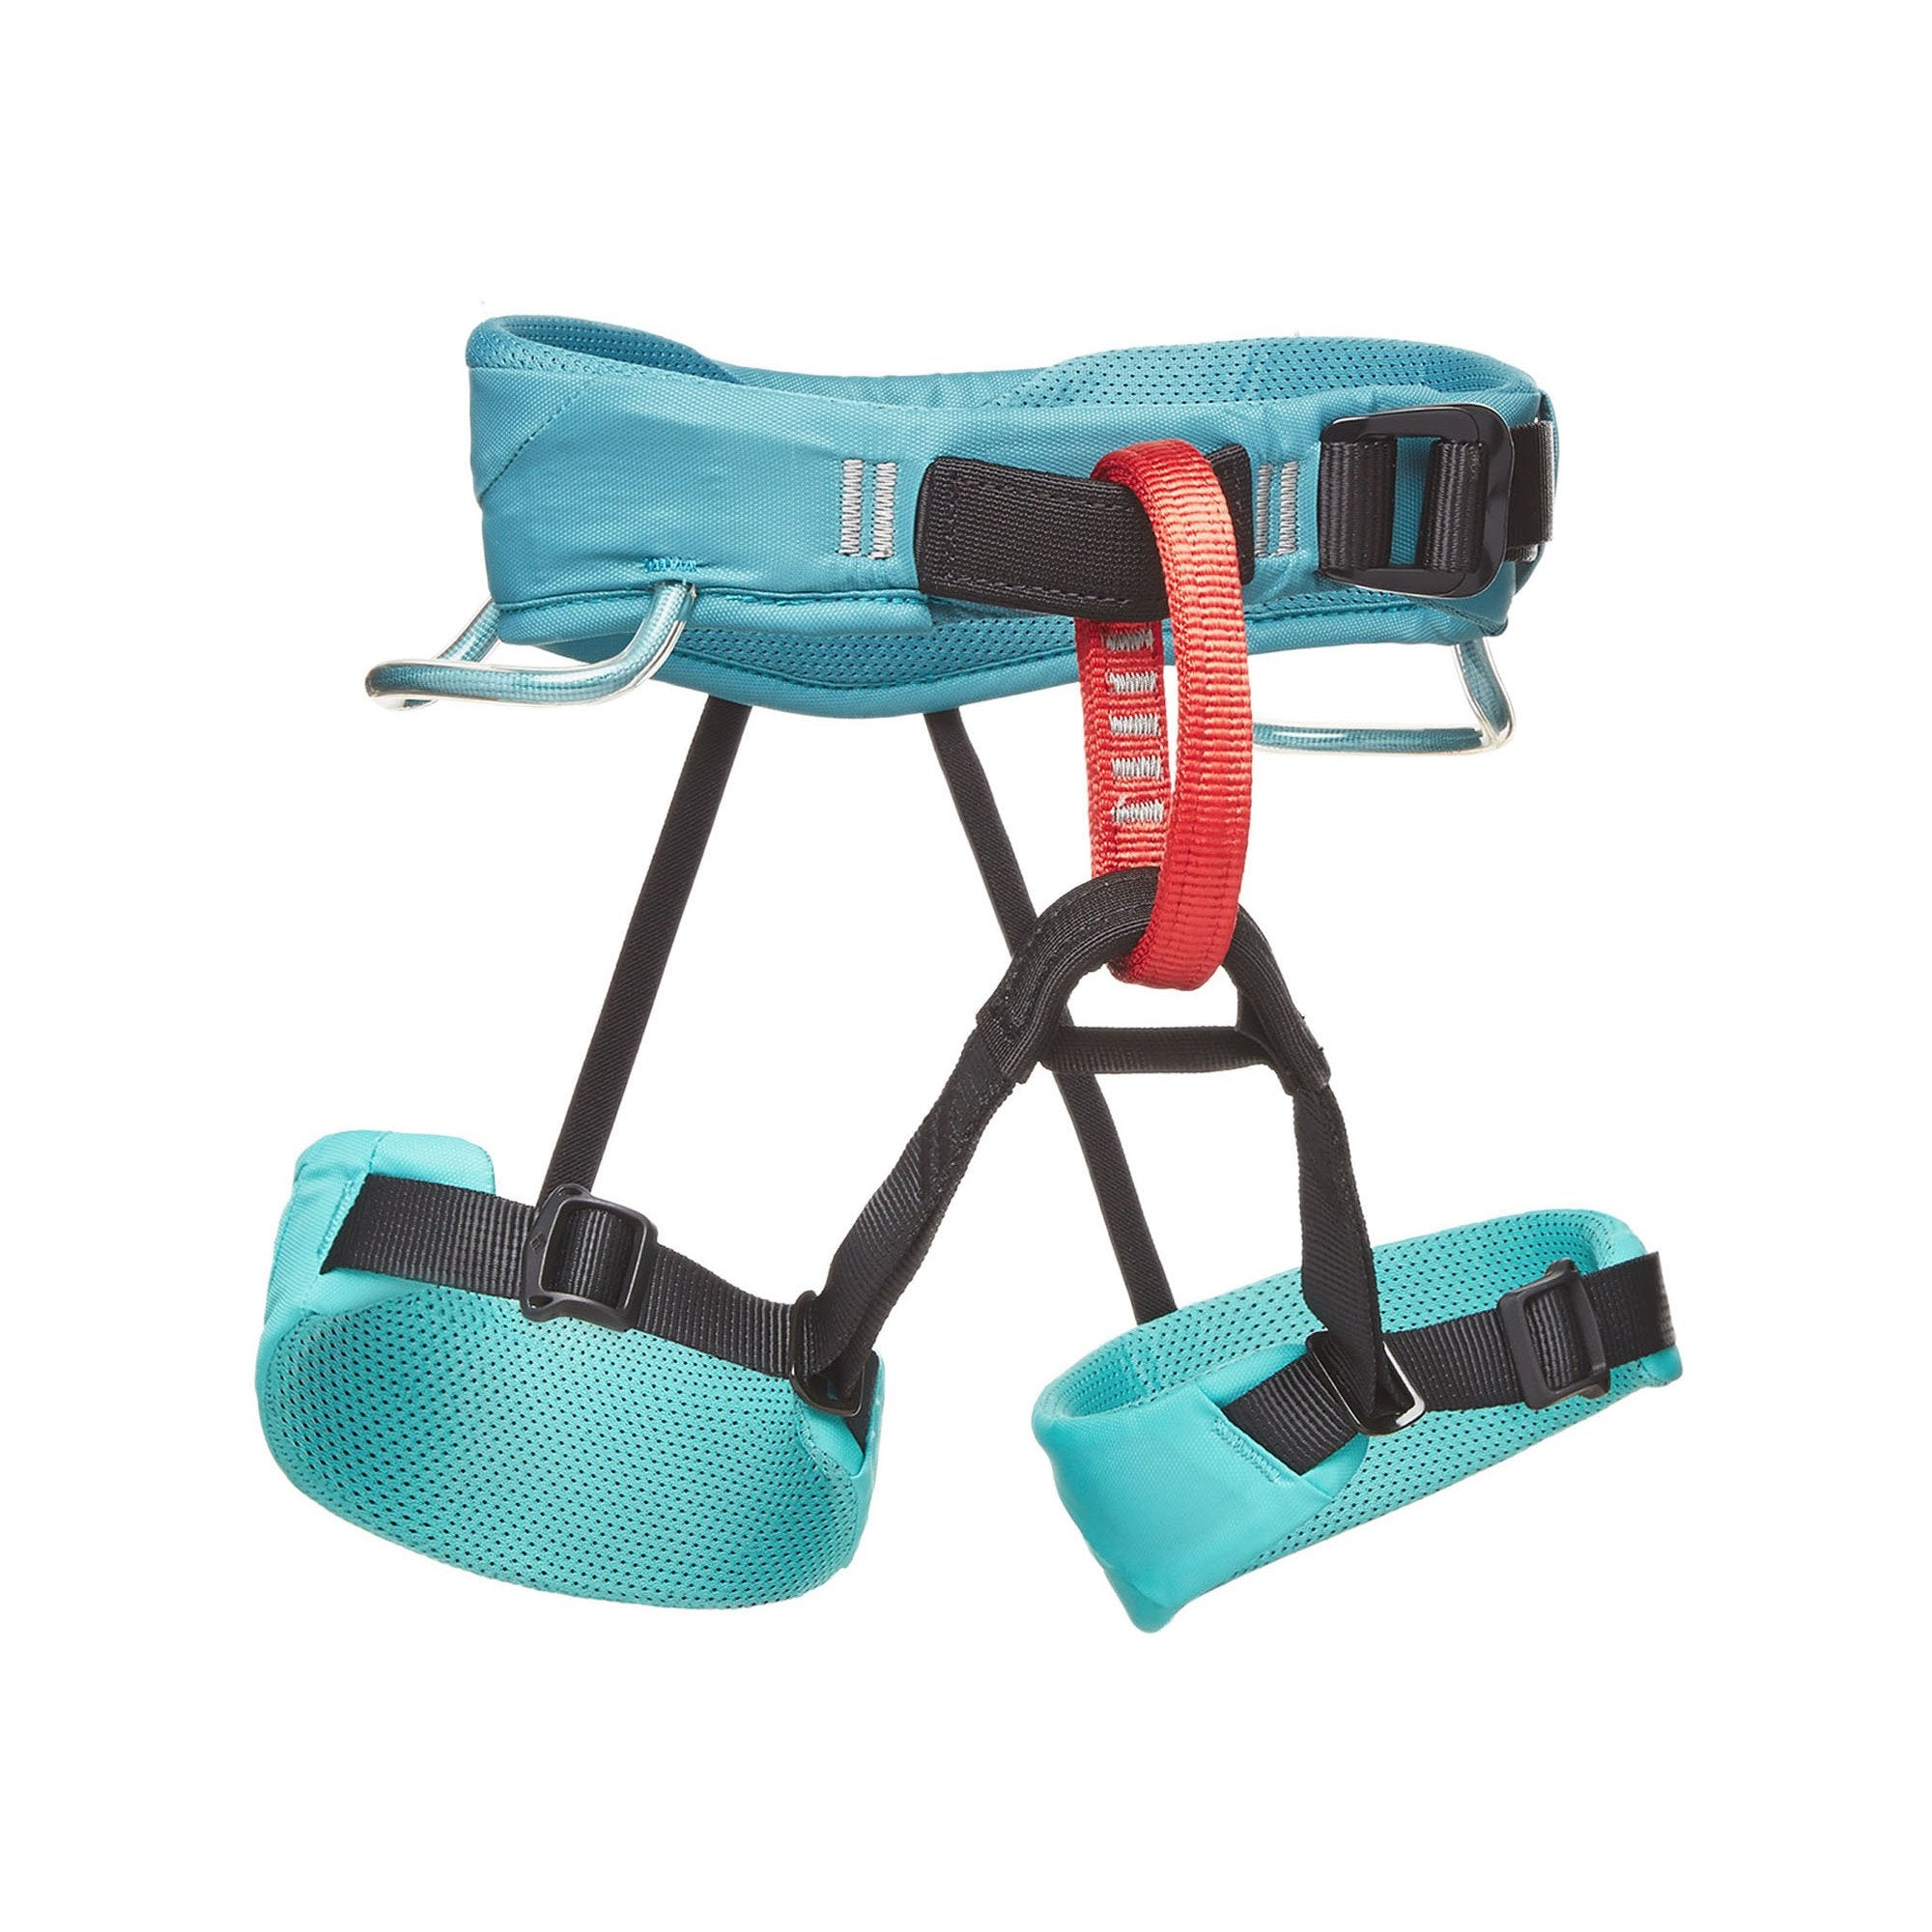 Black Diamond Momentum Kids Harness in aqua blue, black and red colours